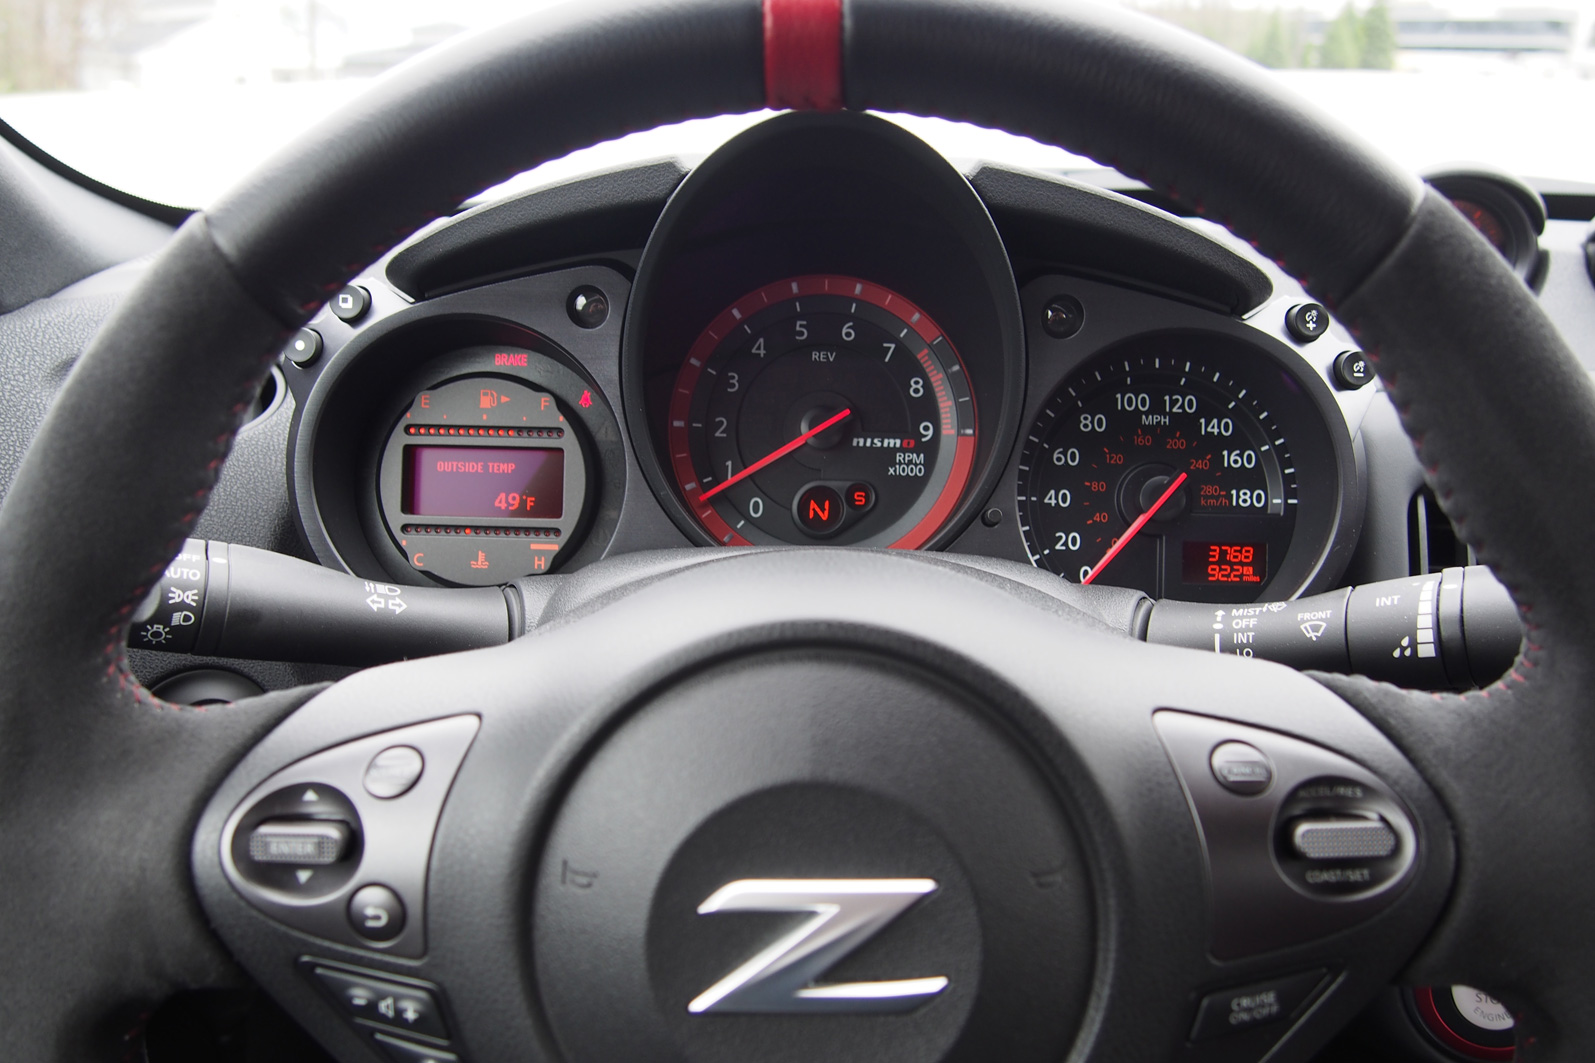 2015 ford mustang gt vs 2015 nissan 370z nismo autoguide news 2015 nissan 370z nismo interior 01 vanachro Image collections